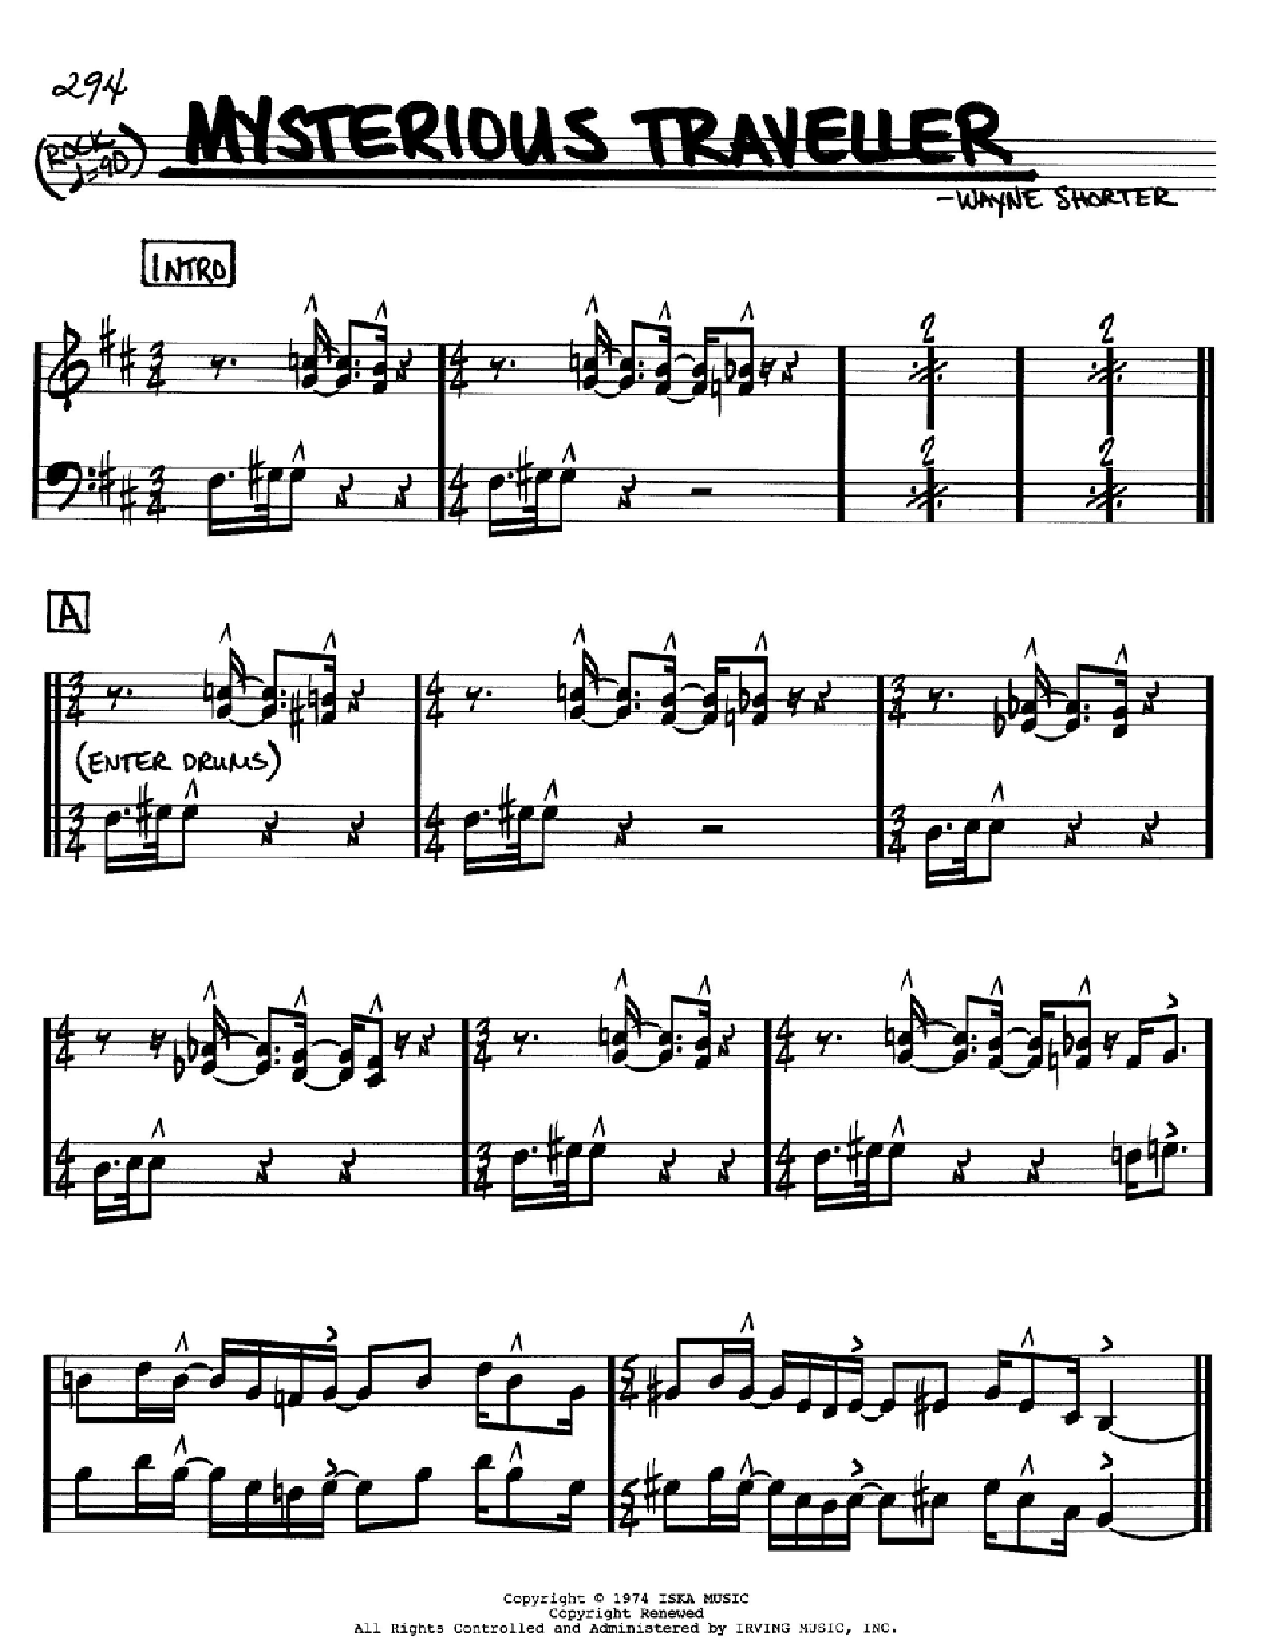 Mysterious Traveller Sheet Music